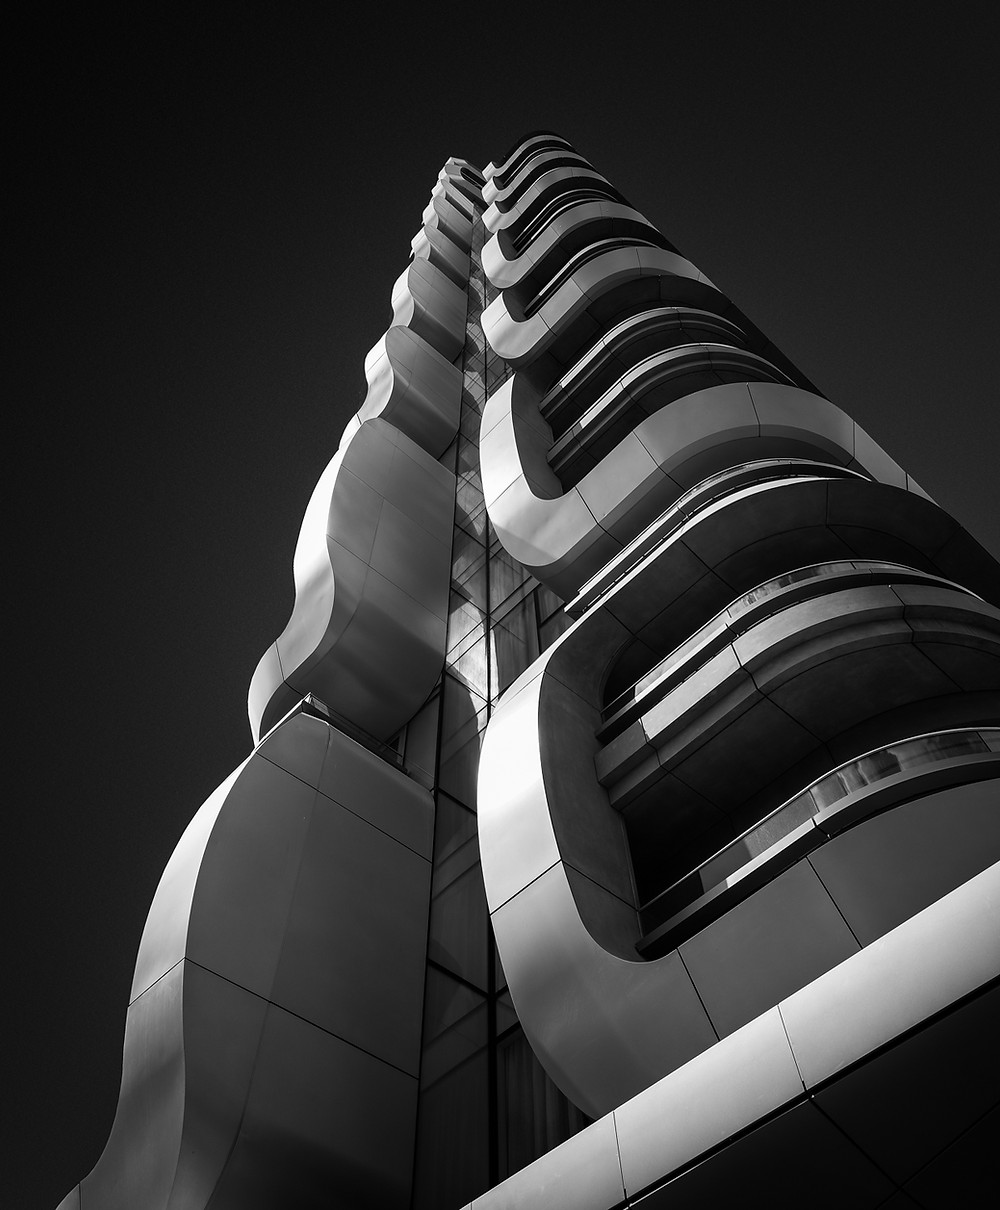 fine art architecture long exposure London